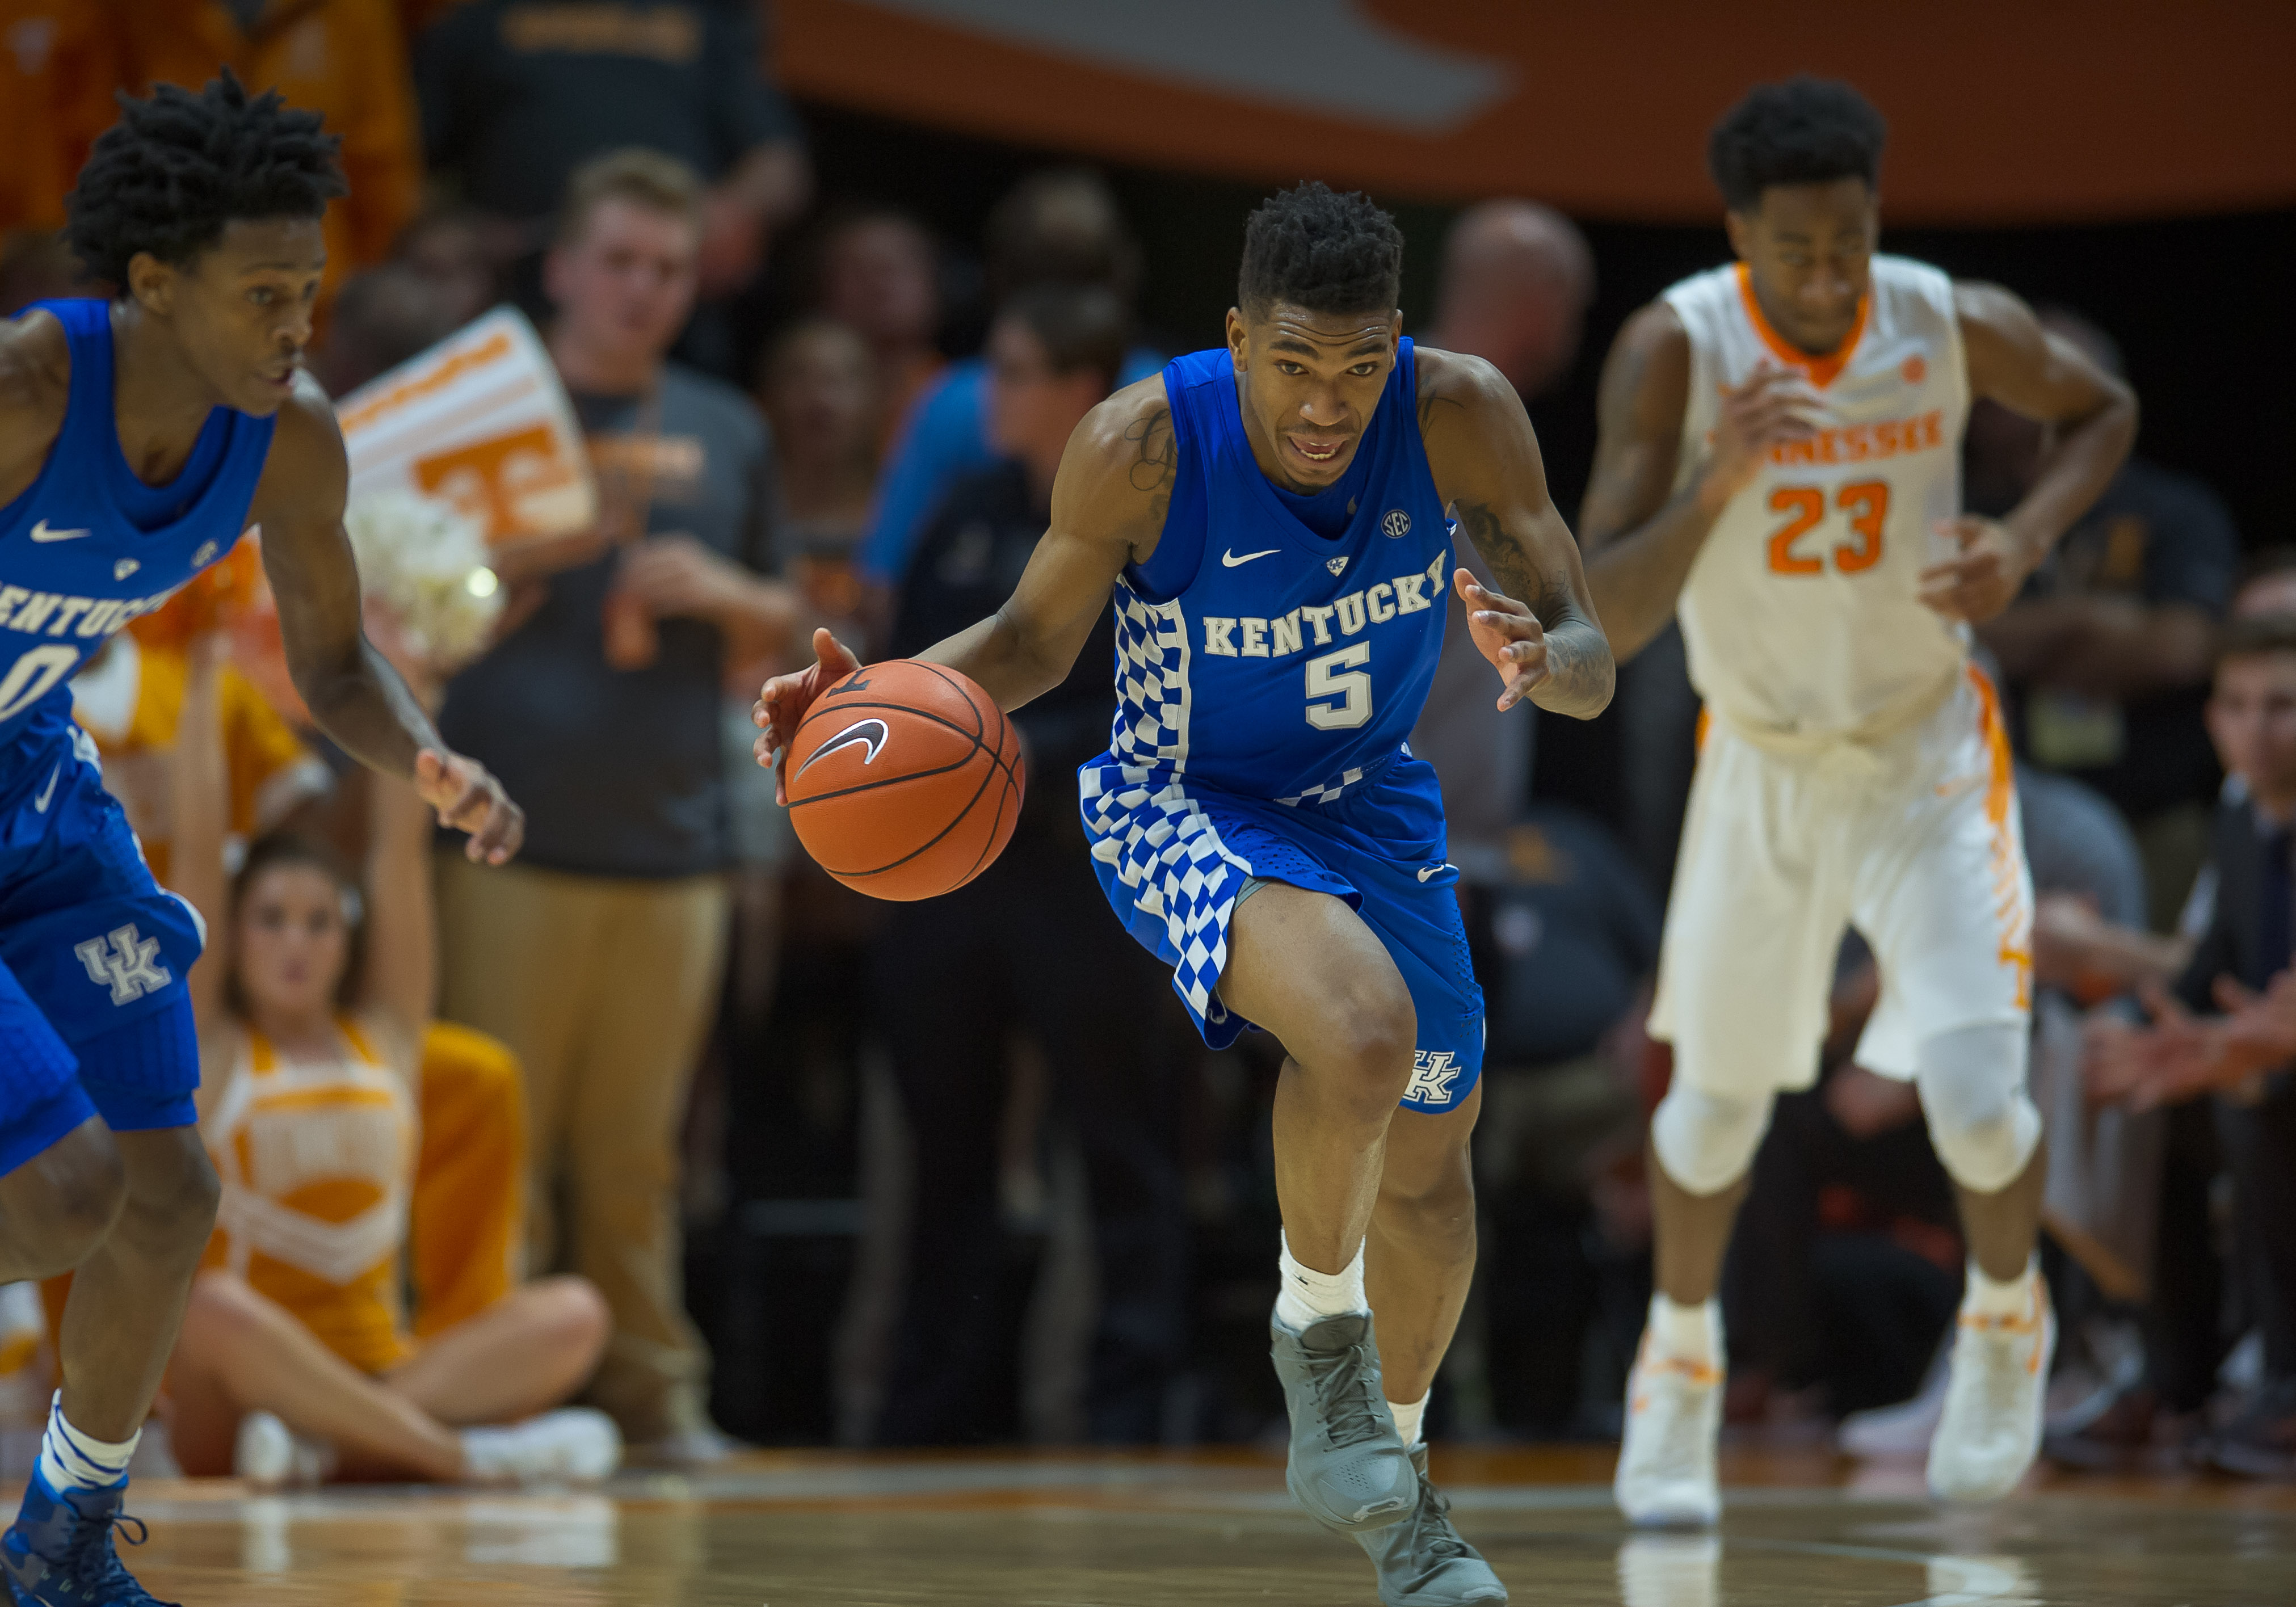 Jan 24, 2017; Knoxville, TN, USA; Kentucky Wildcats guard Malik Monk (5) dribbles the ball in the second half against the Tennessee Volunteers at Thompson-Boling Arena. The Volunteers won 82-80. Mandatory Credit: Bryan Lynn-USA TODAY Sports